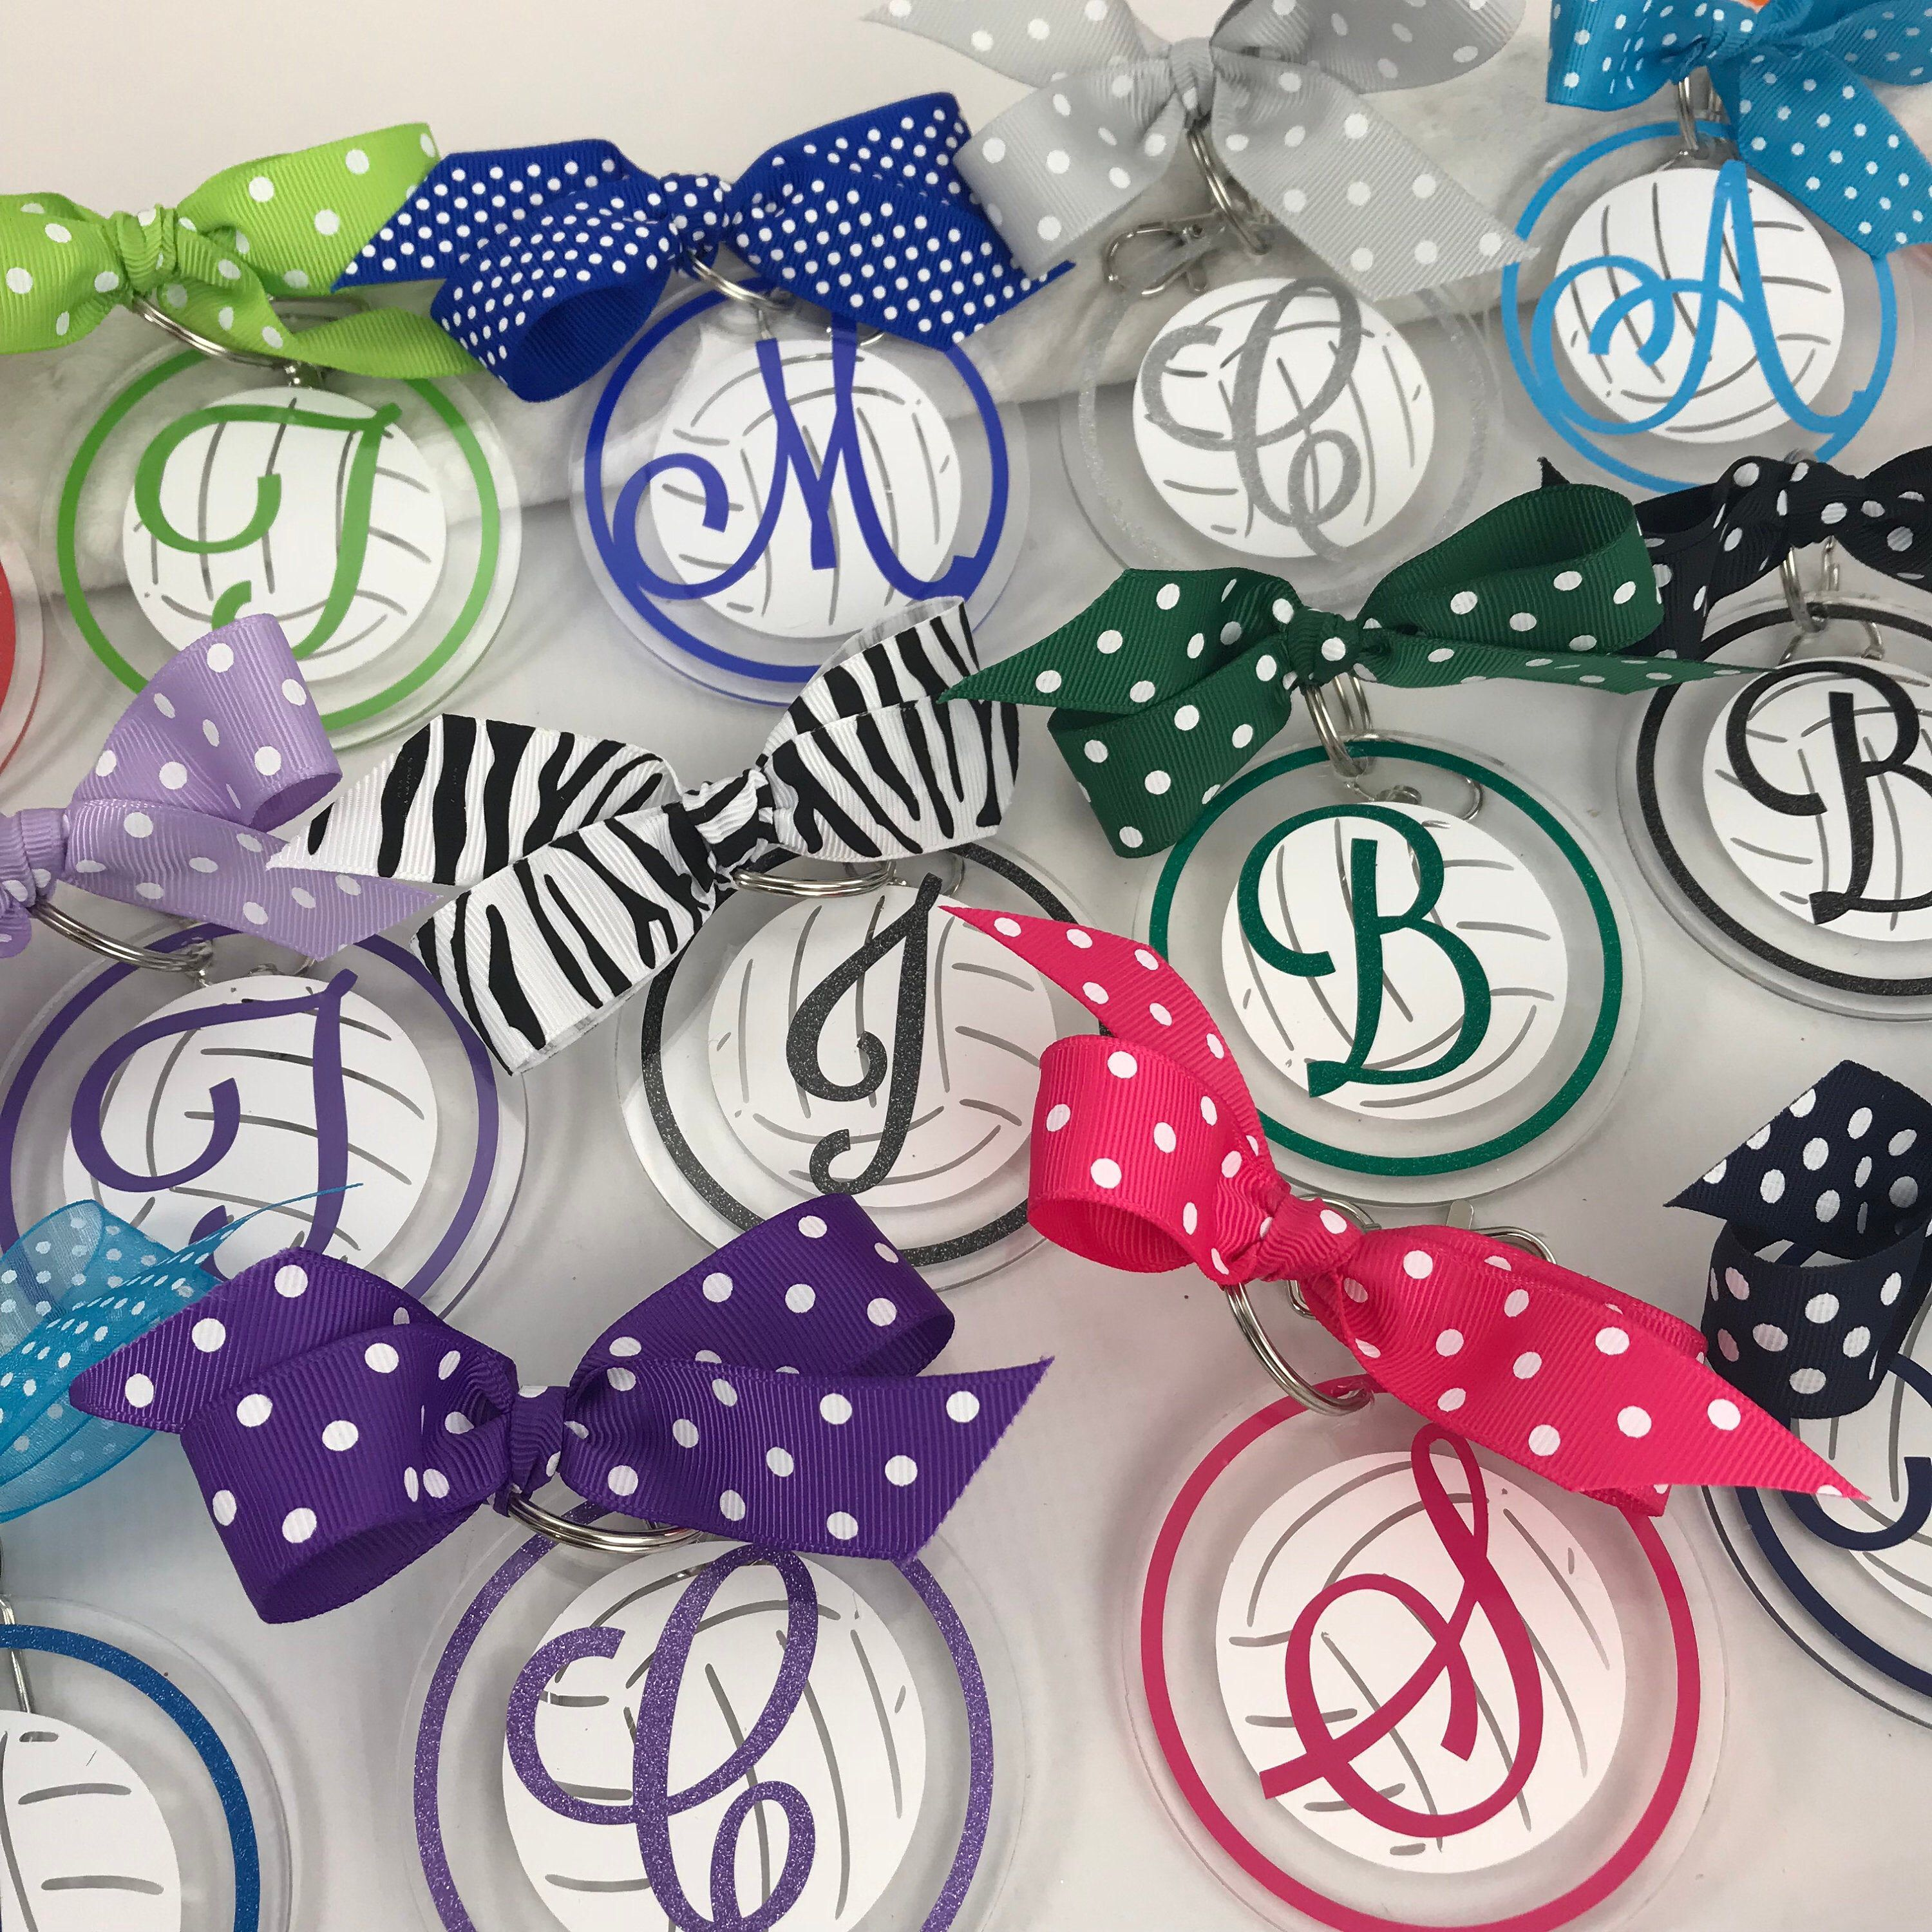 Volleyball Bag Tag With White Ball And Fancy Script Initial Volleyball Gift Personalized Monogrammed Gemlights Personalized Gifts Volleyball Gifts Bags Volleyball